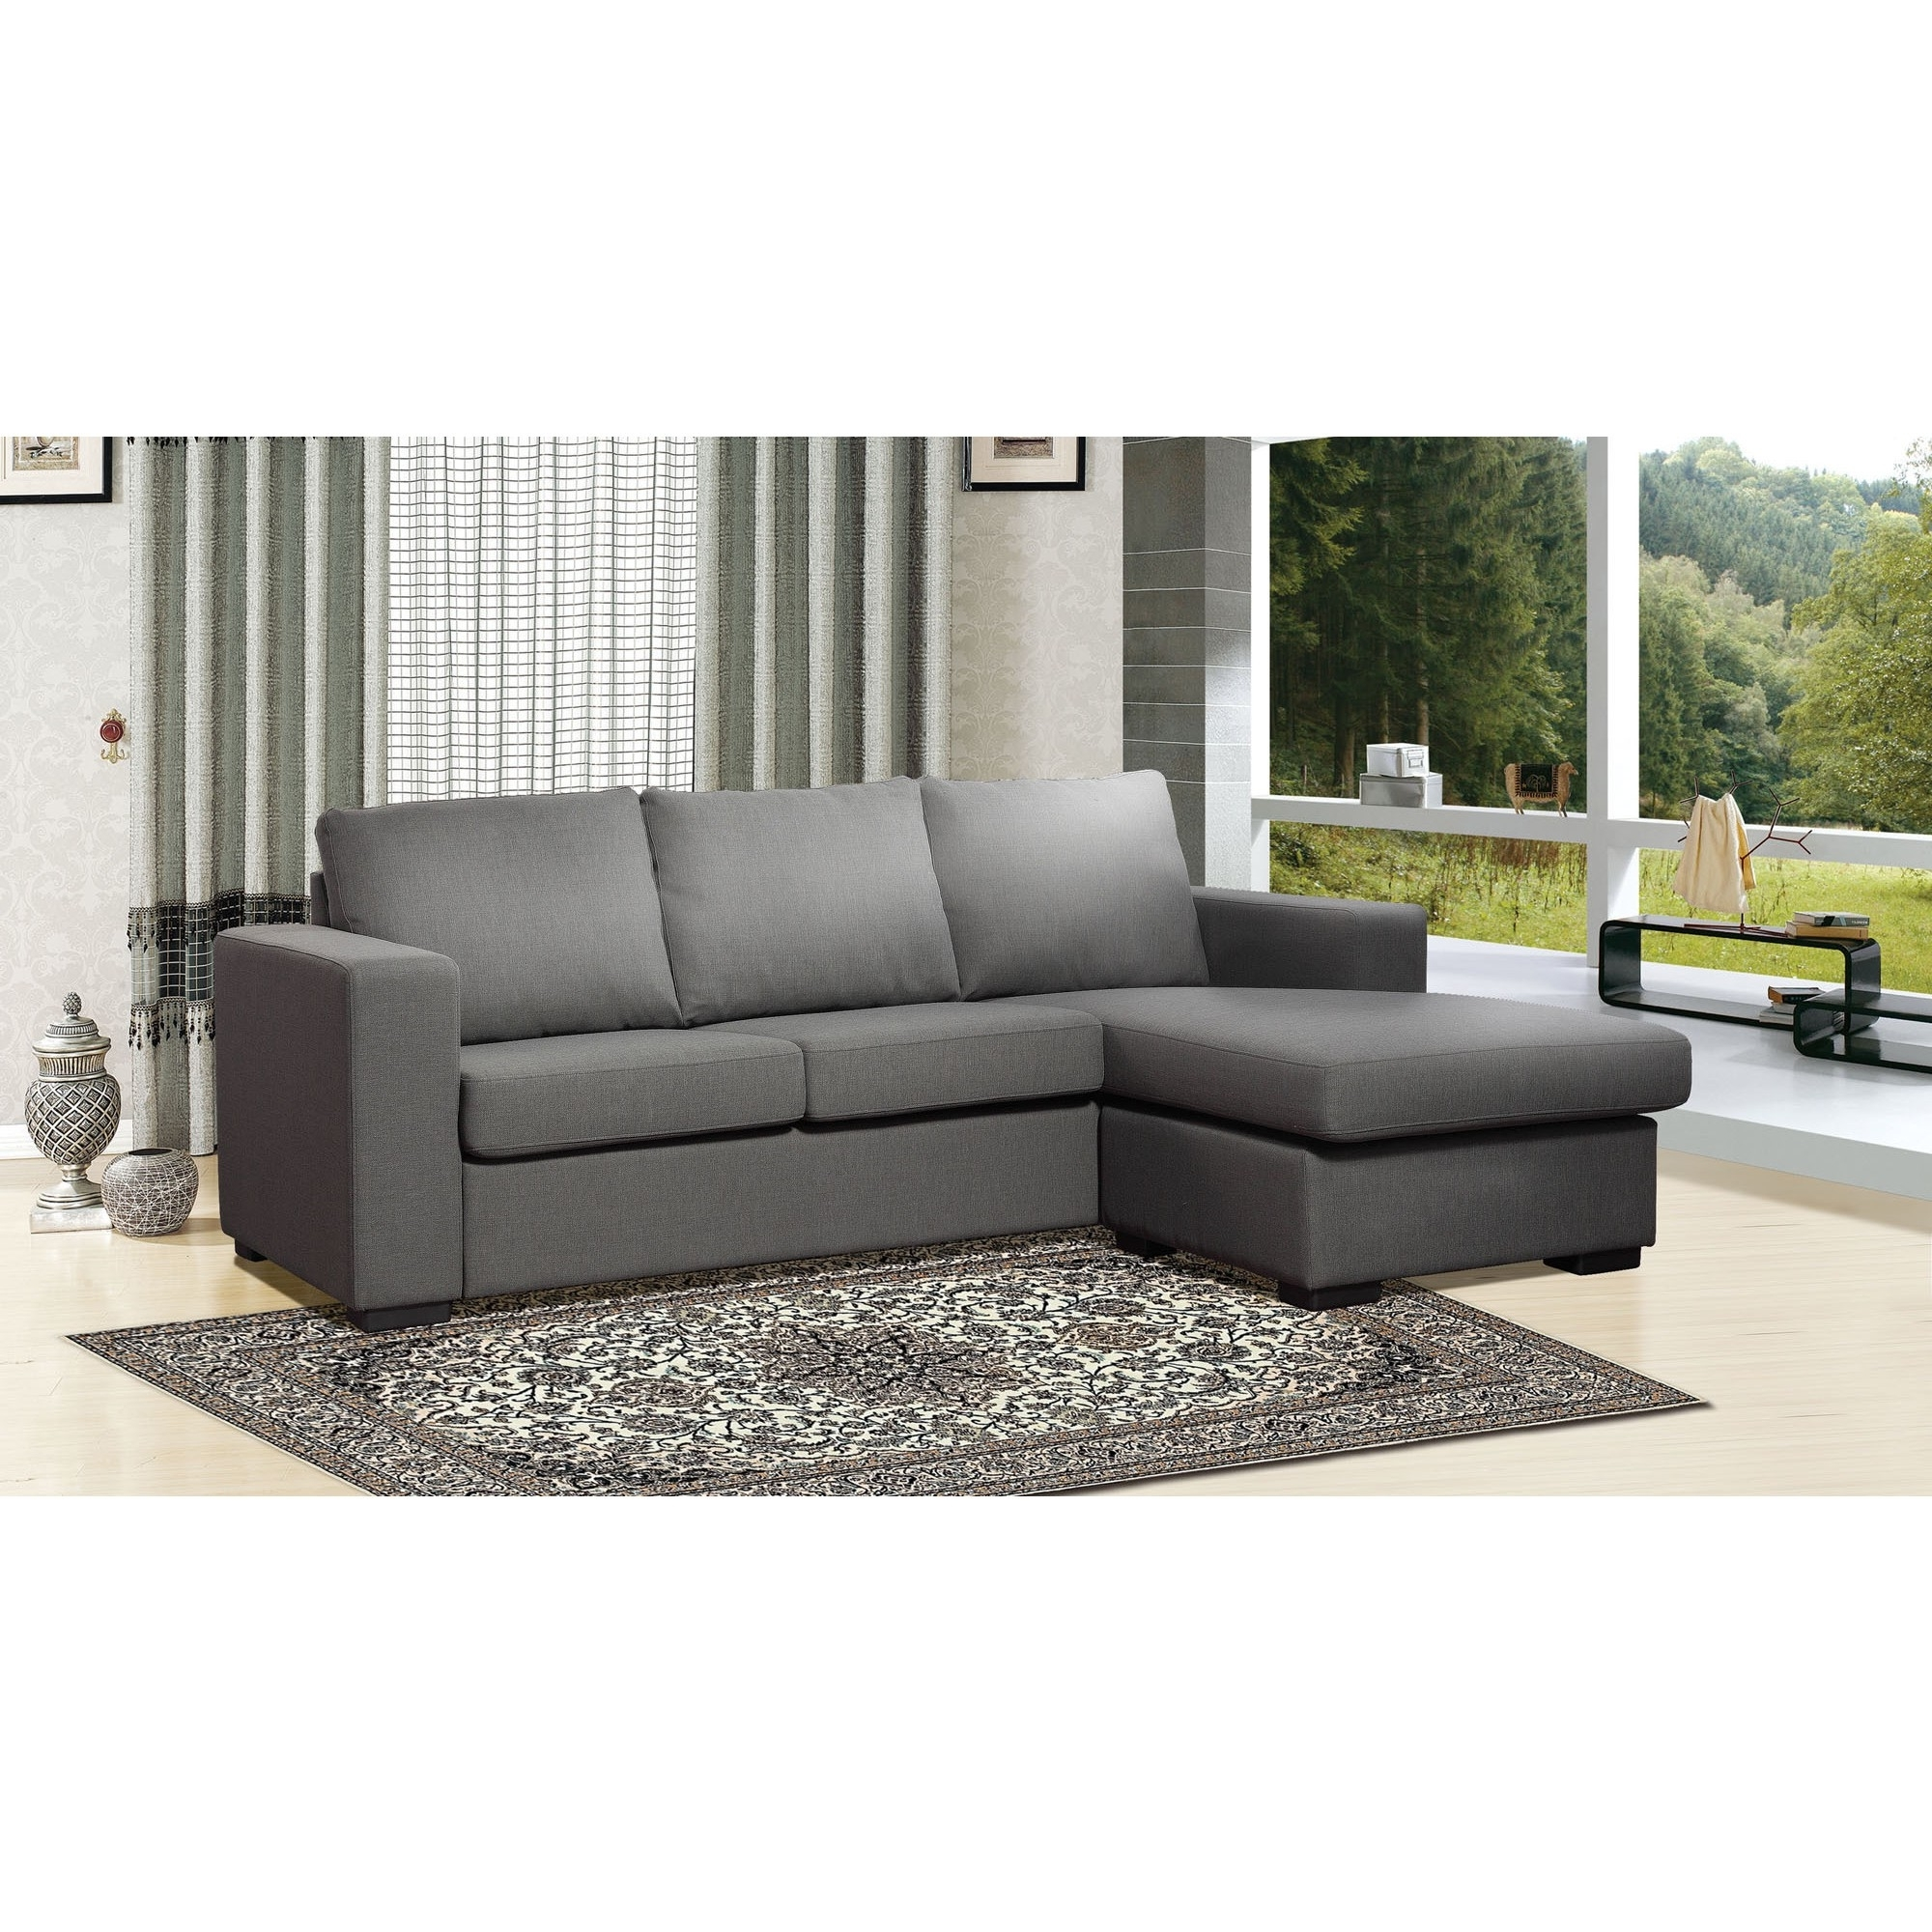 Popular Small Couches With Chaise Lounge Throughout Furniture Small Sectional Couch Small Couch L Type Sofa Couch Set (View 14 of 15)